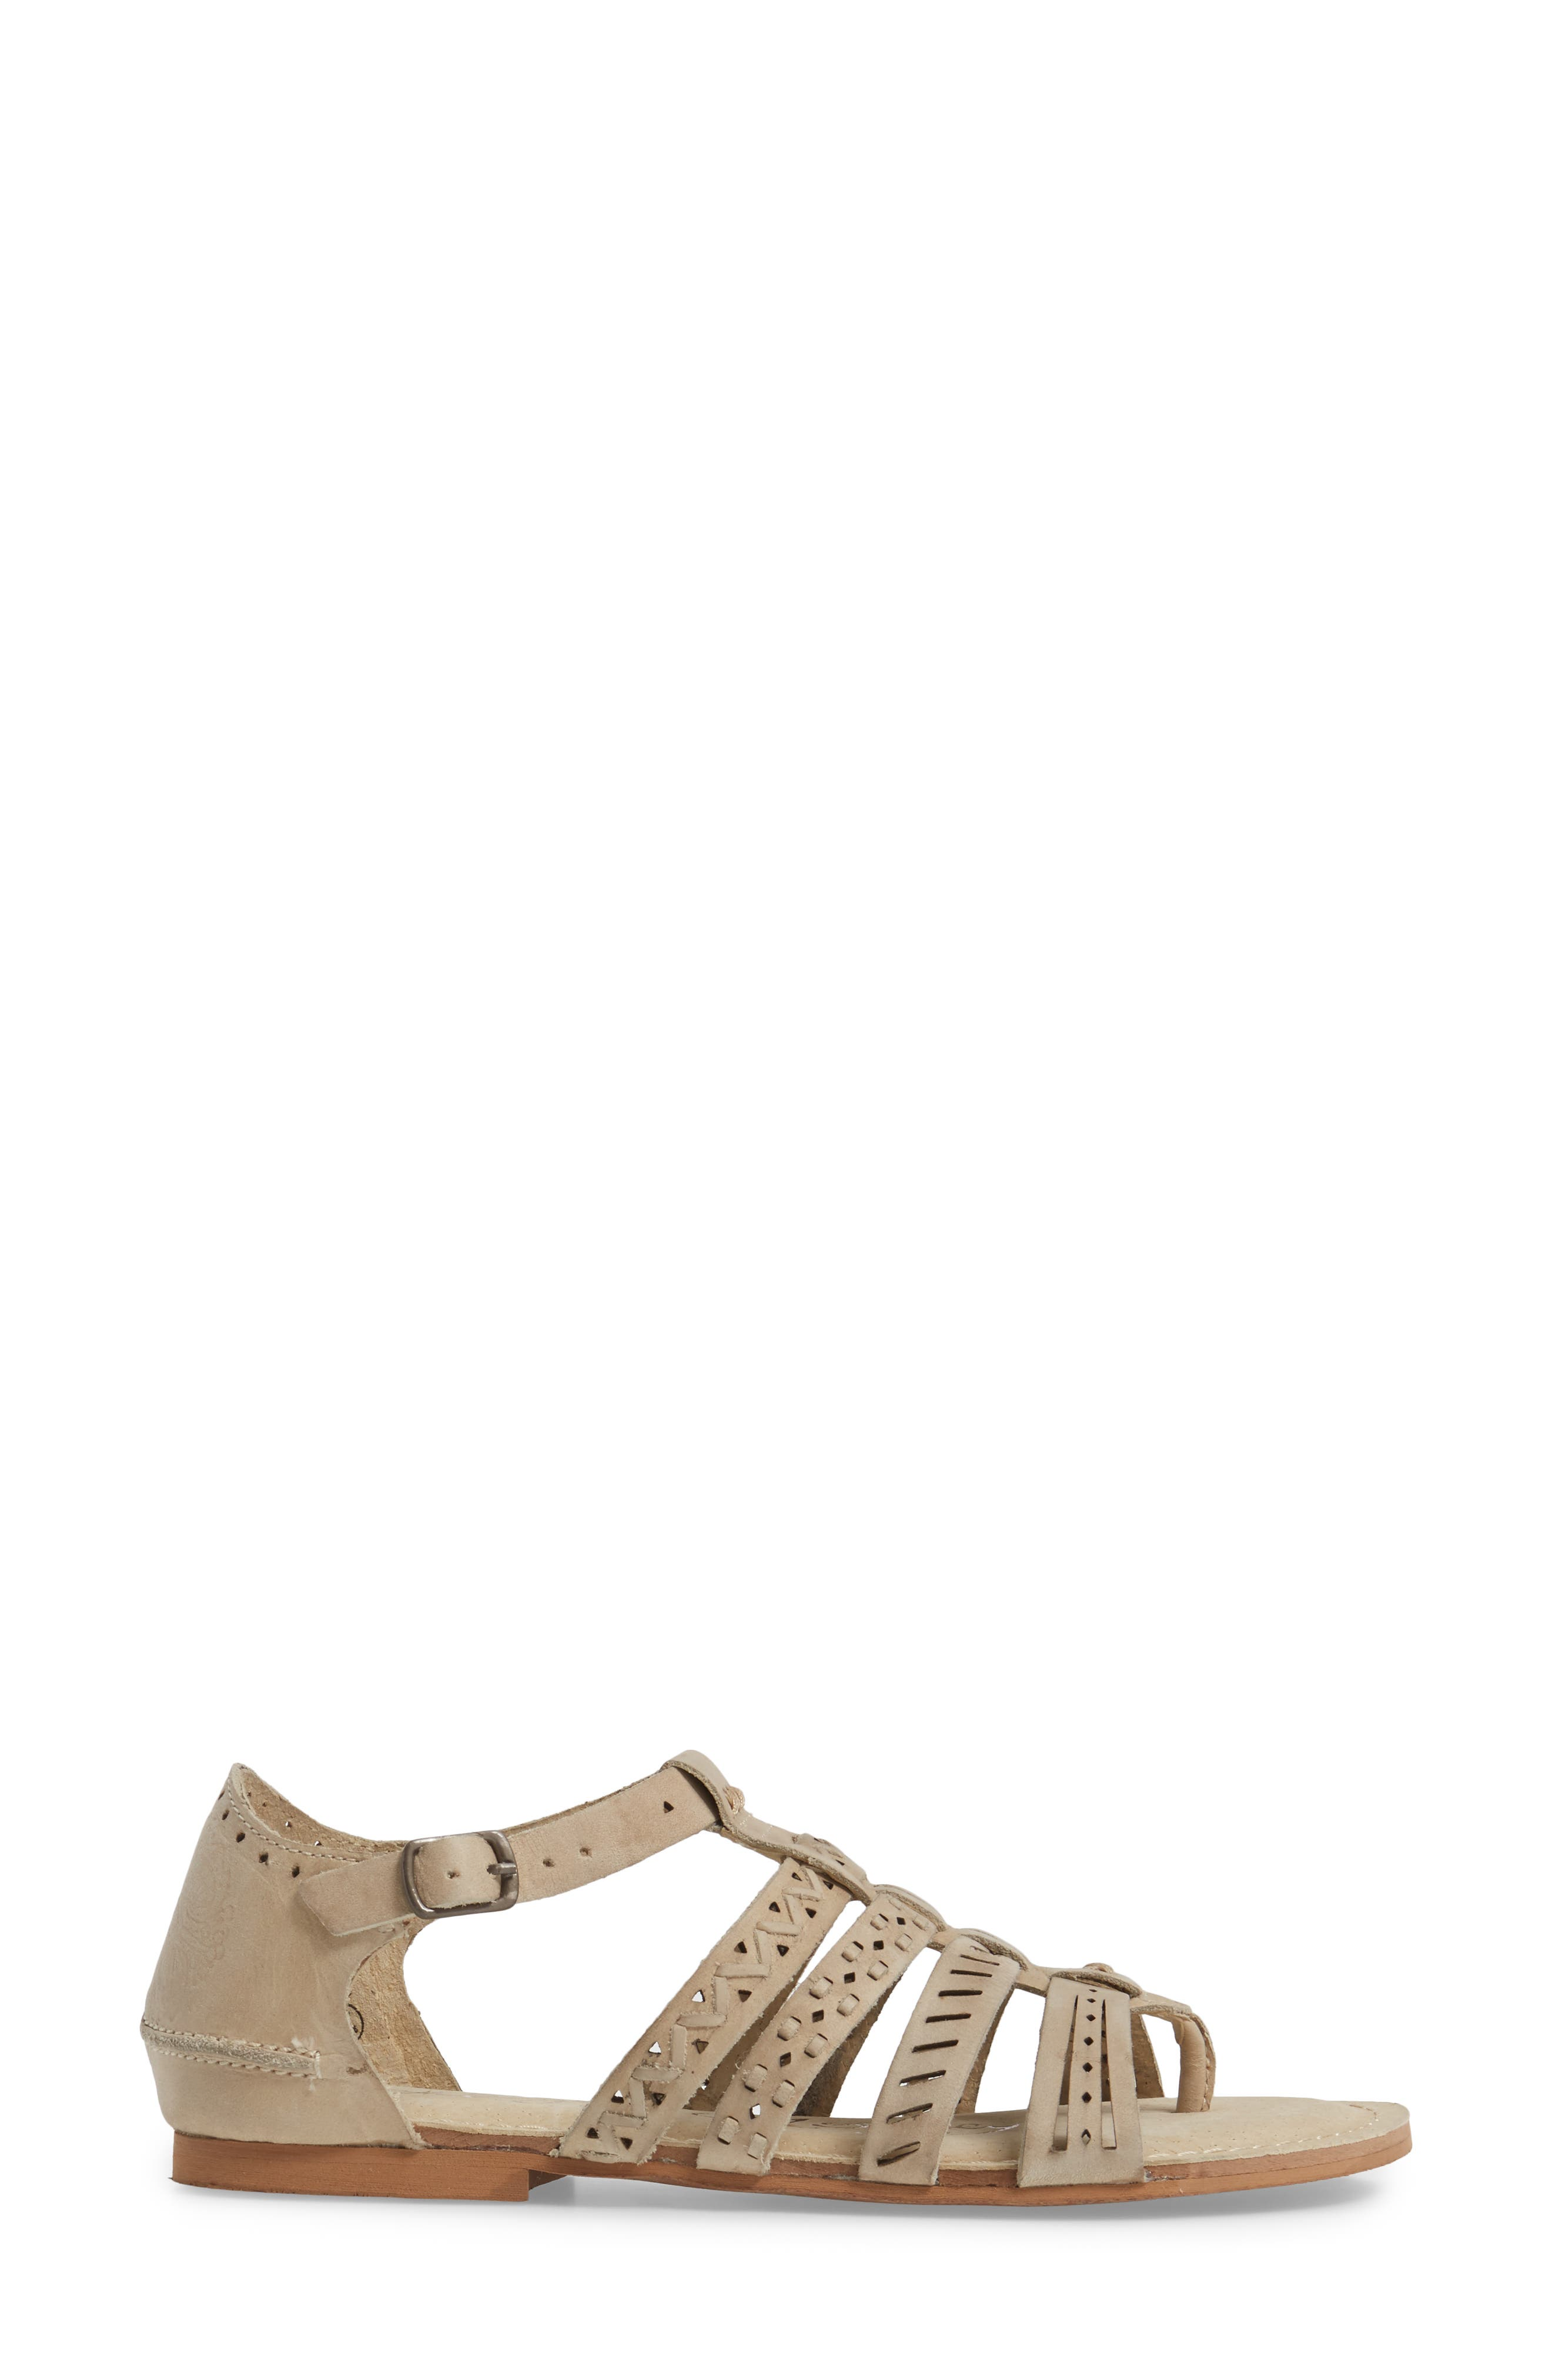 True Grit Perforated Sandal,                             Alternate thumbnail 3, color,                             Cream Leather